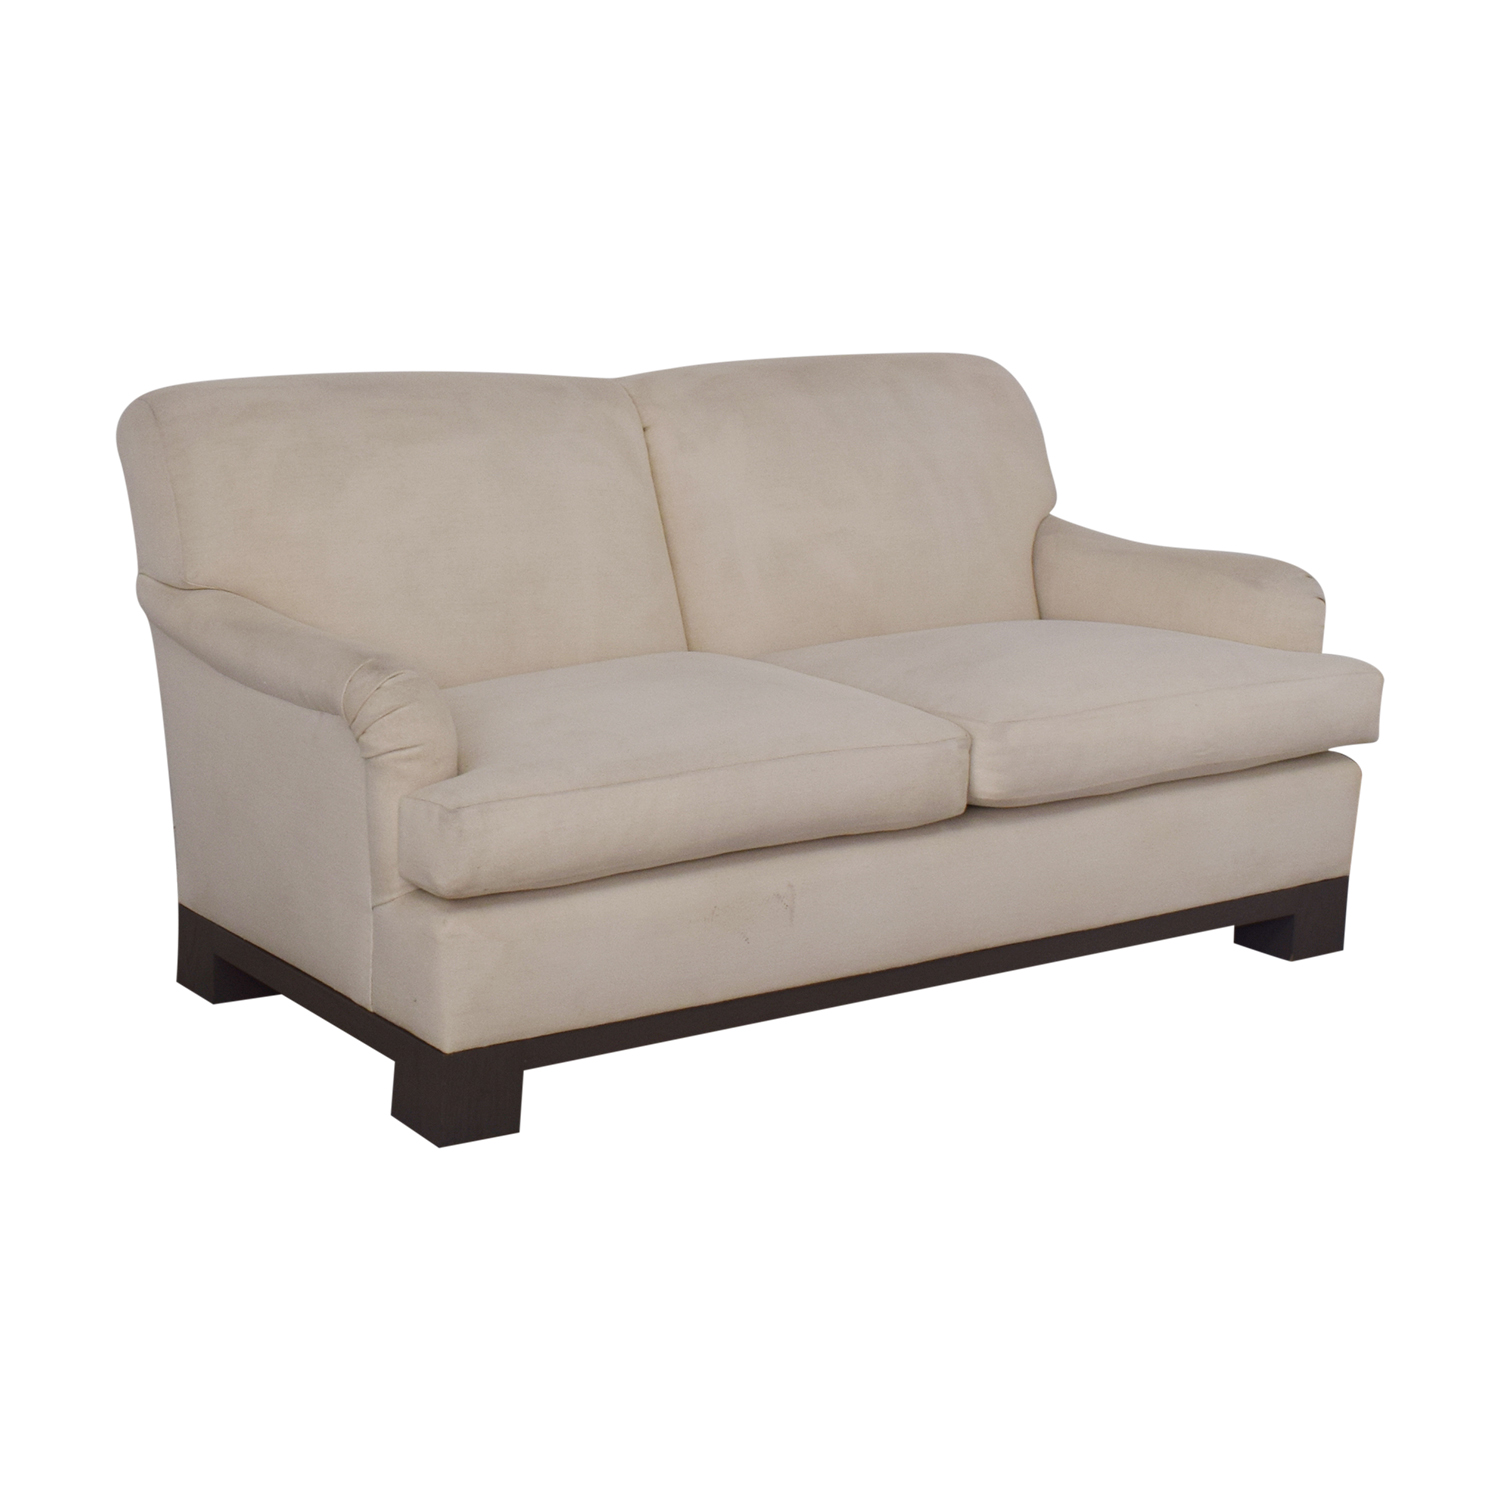 Furniture Masters Furniture Masters White Sofa for sale